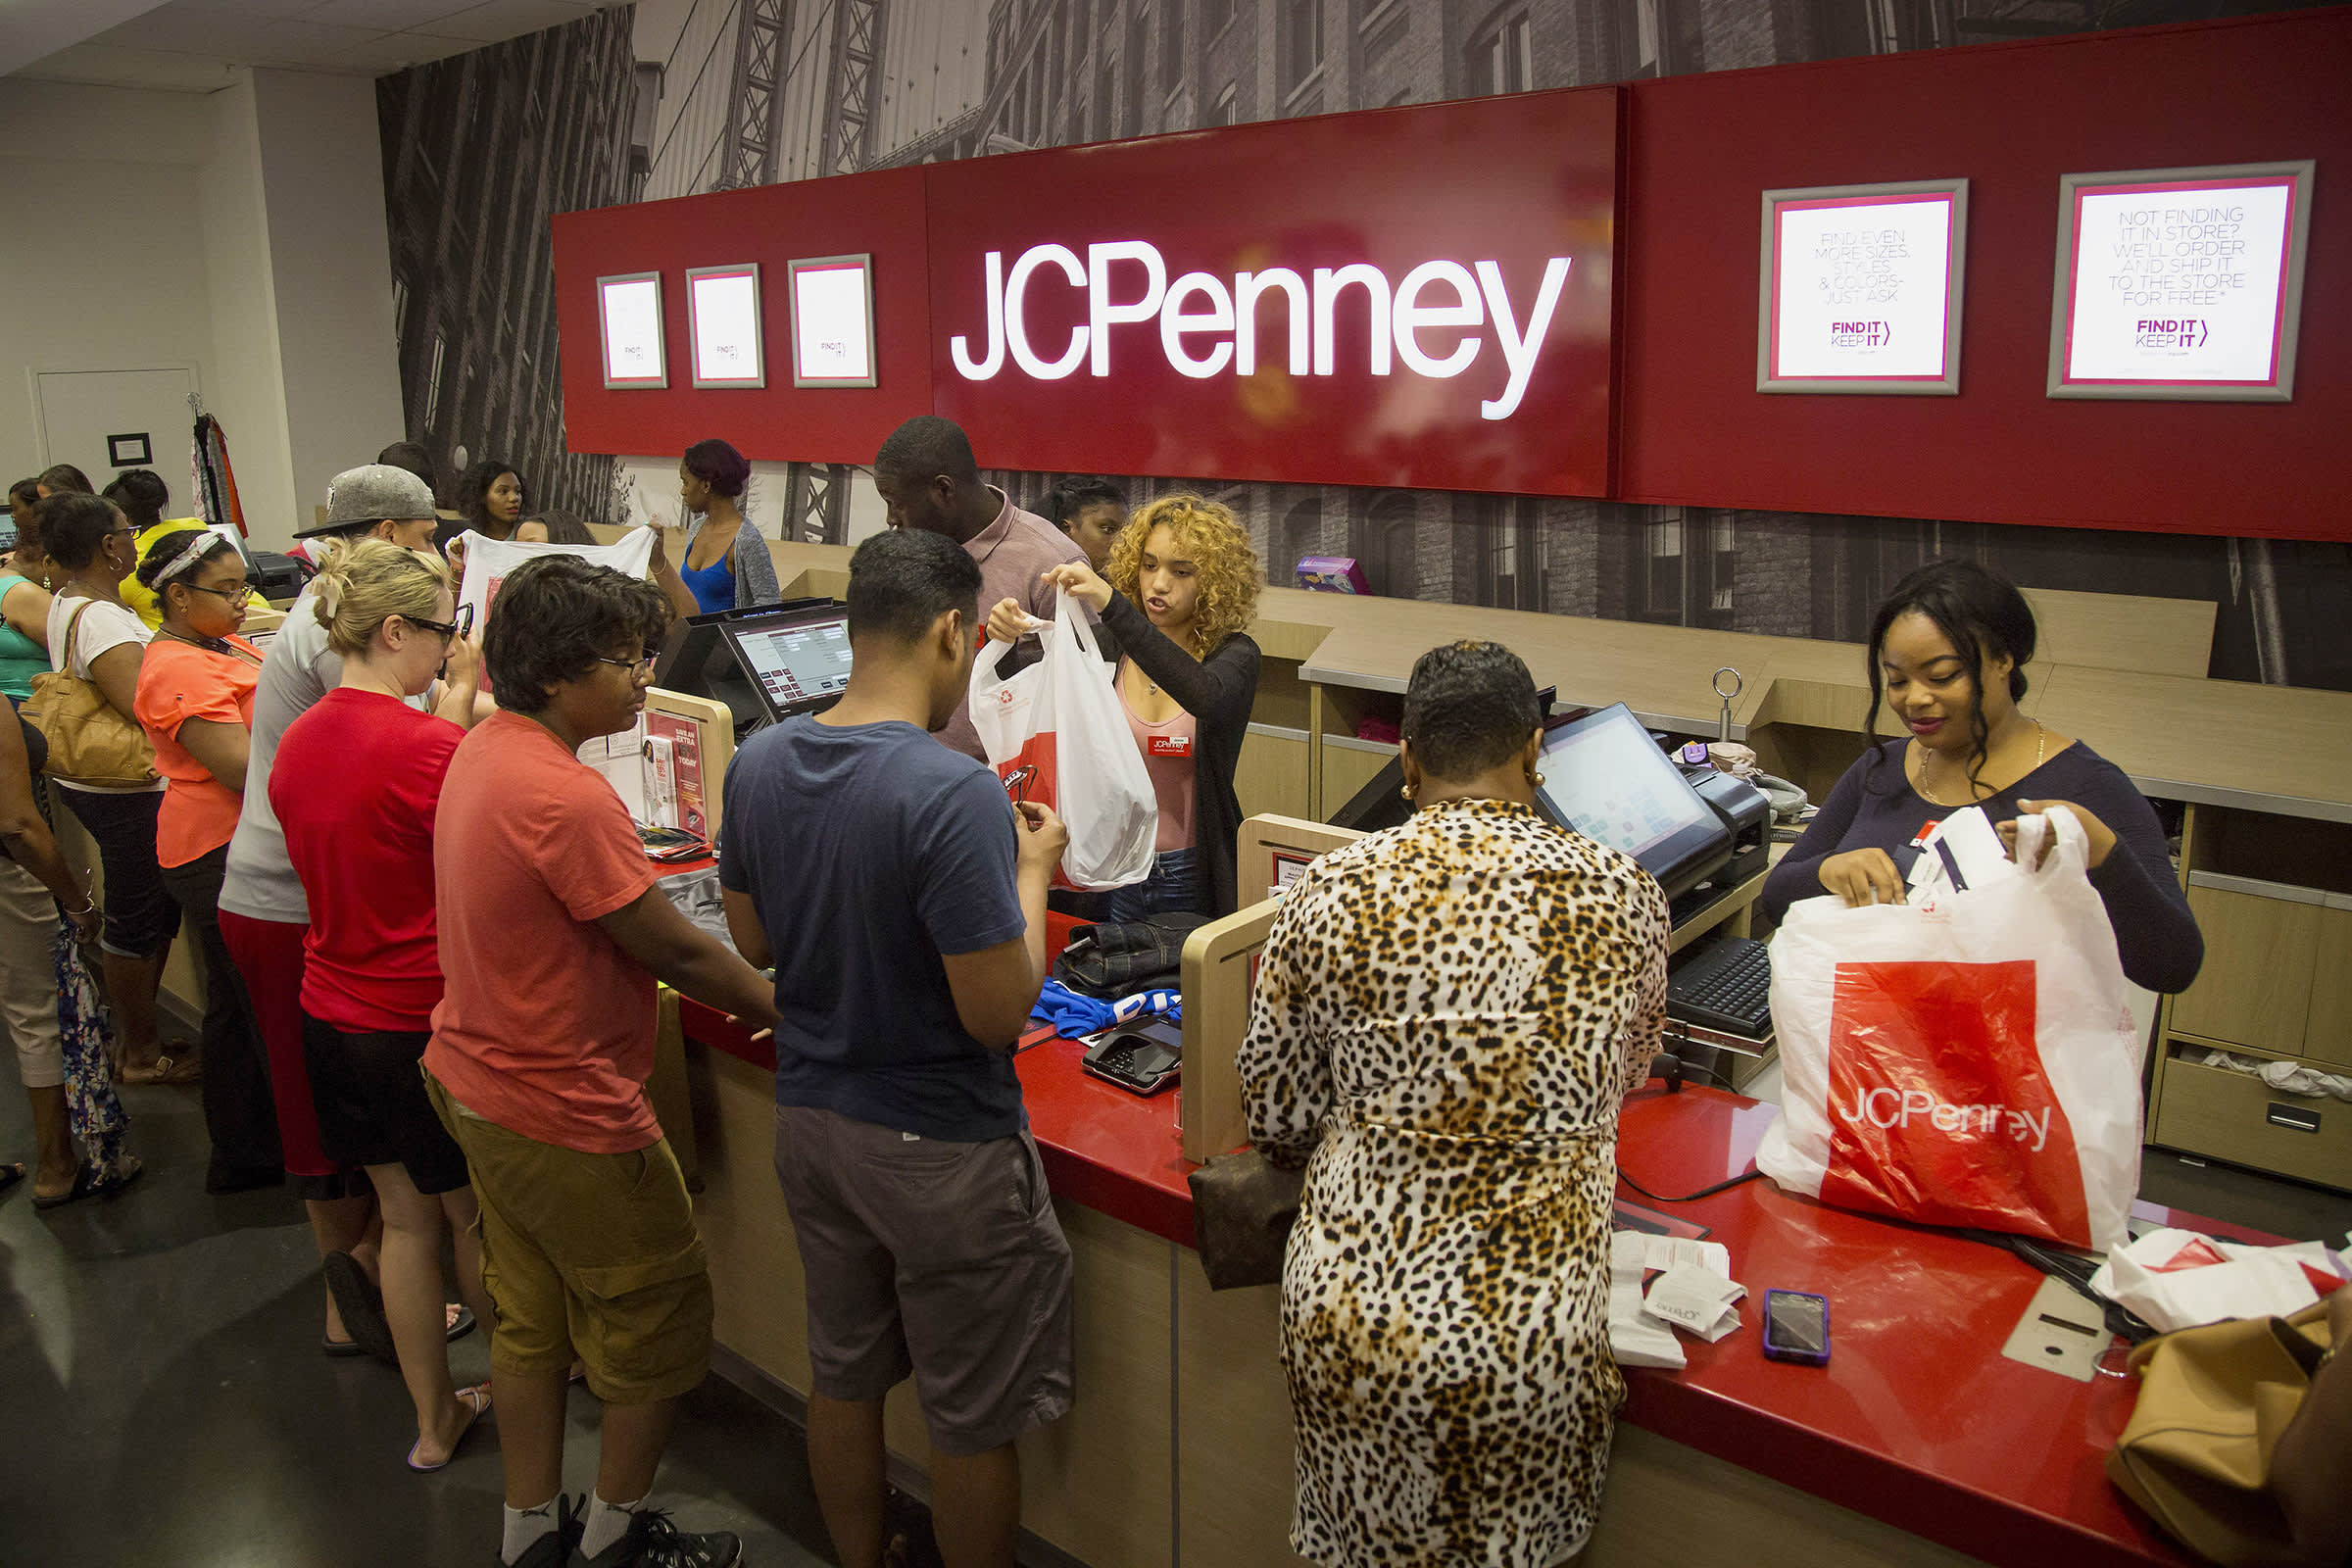 Jcp Stock Quote Jc Penney's Holiday Sales Better Than 2016 Wall Street Not Convinced